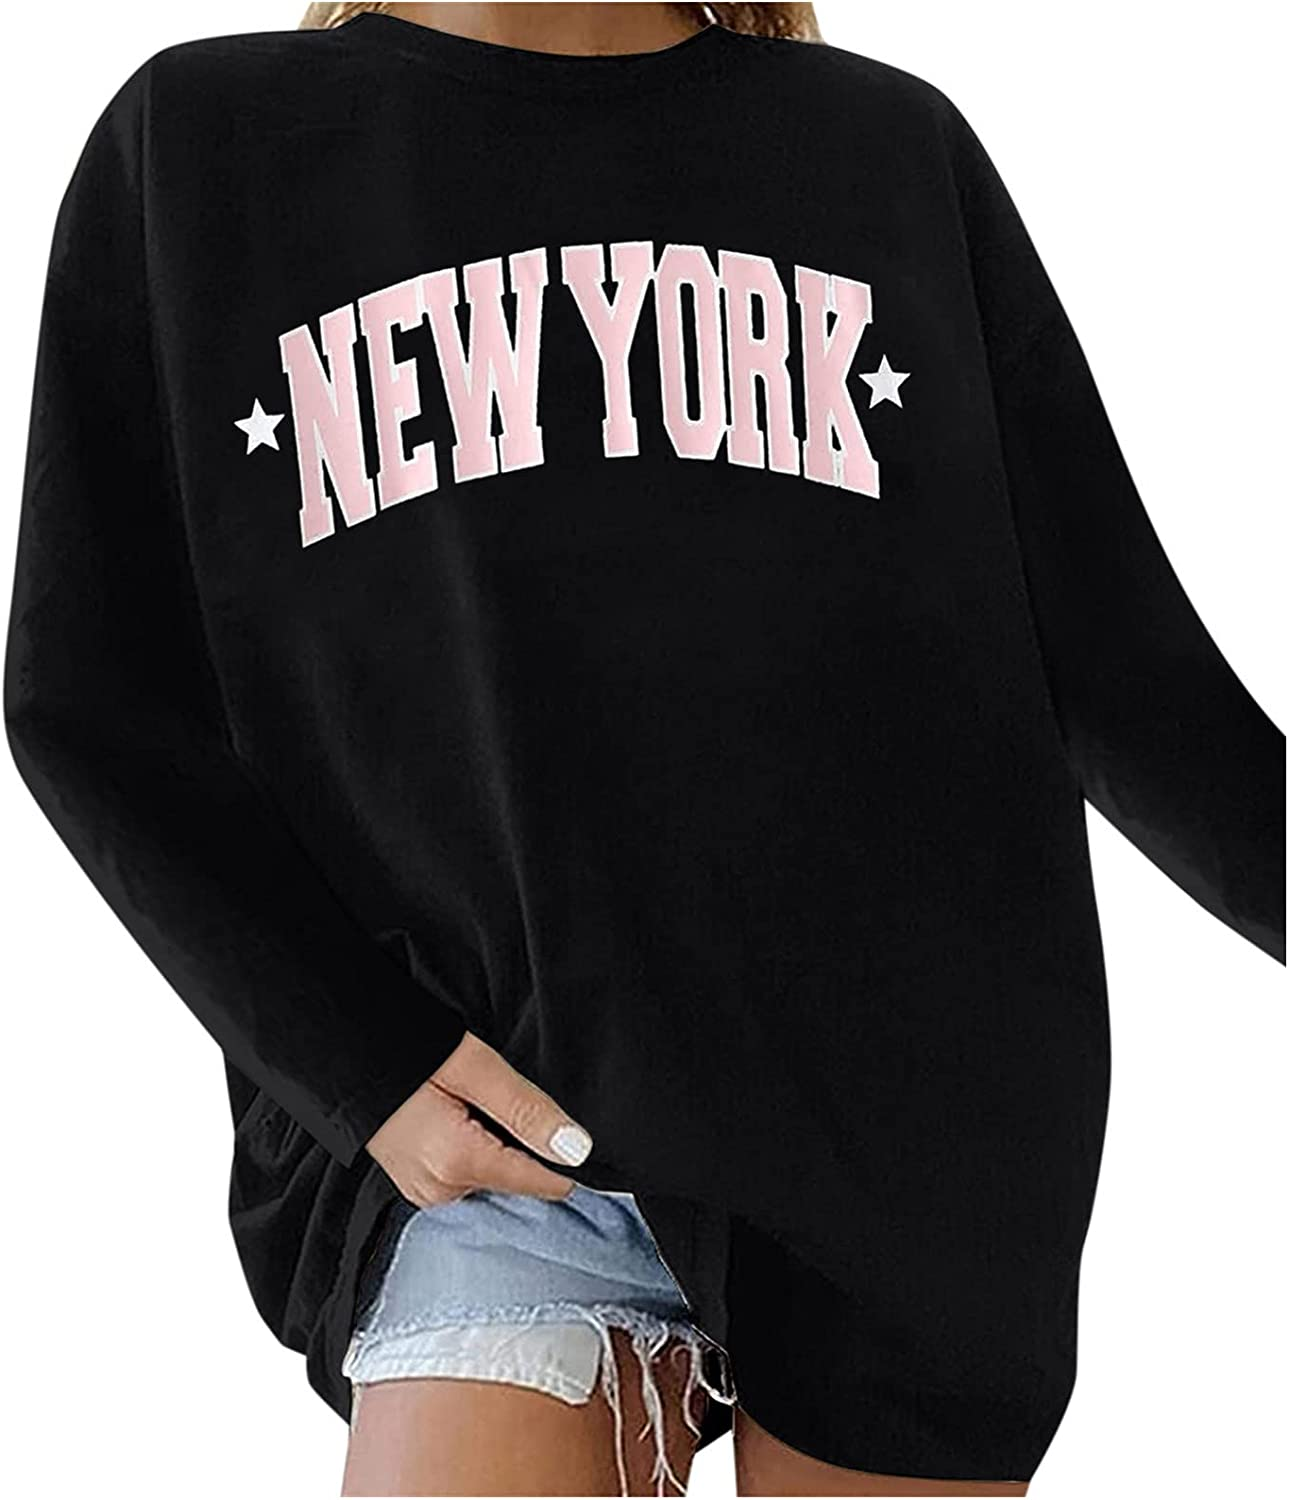 UOCUFY Sweatshirts for Women, Womens Casual Long Sleeve Sweatshirts Tops Cute Graphic Crewneck Pullover Blouses